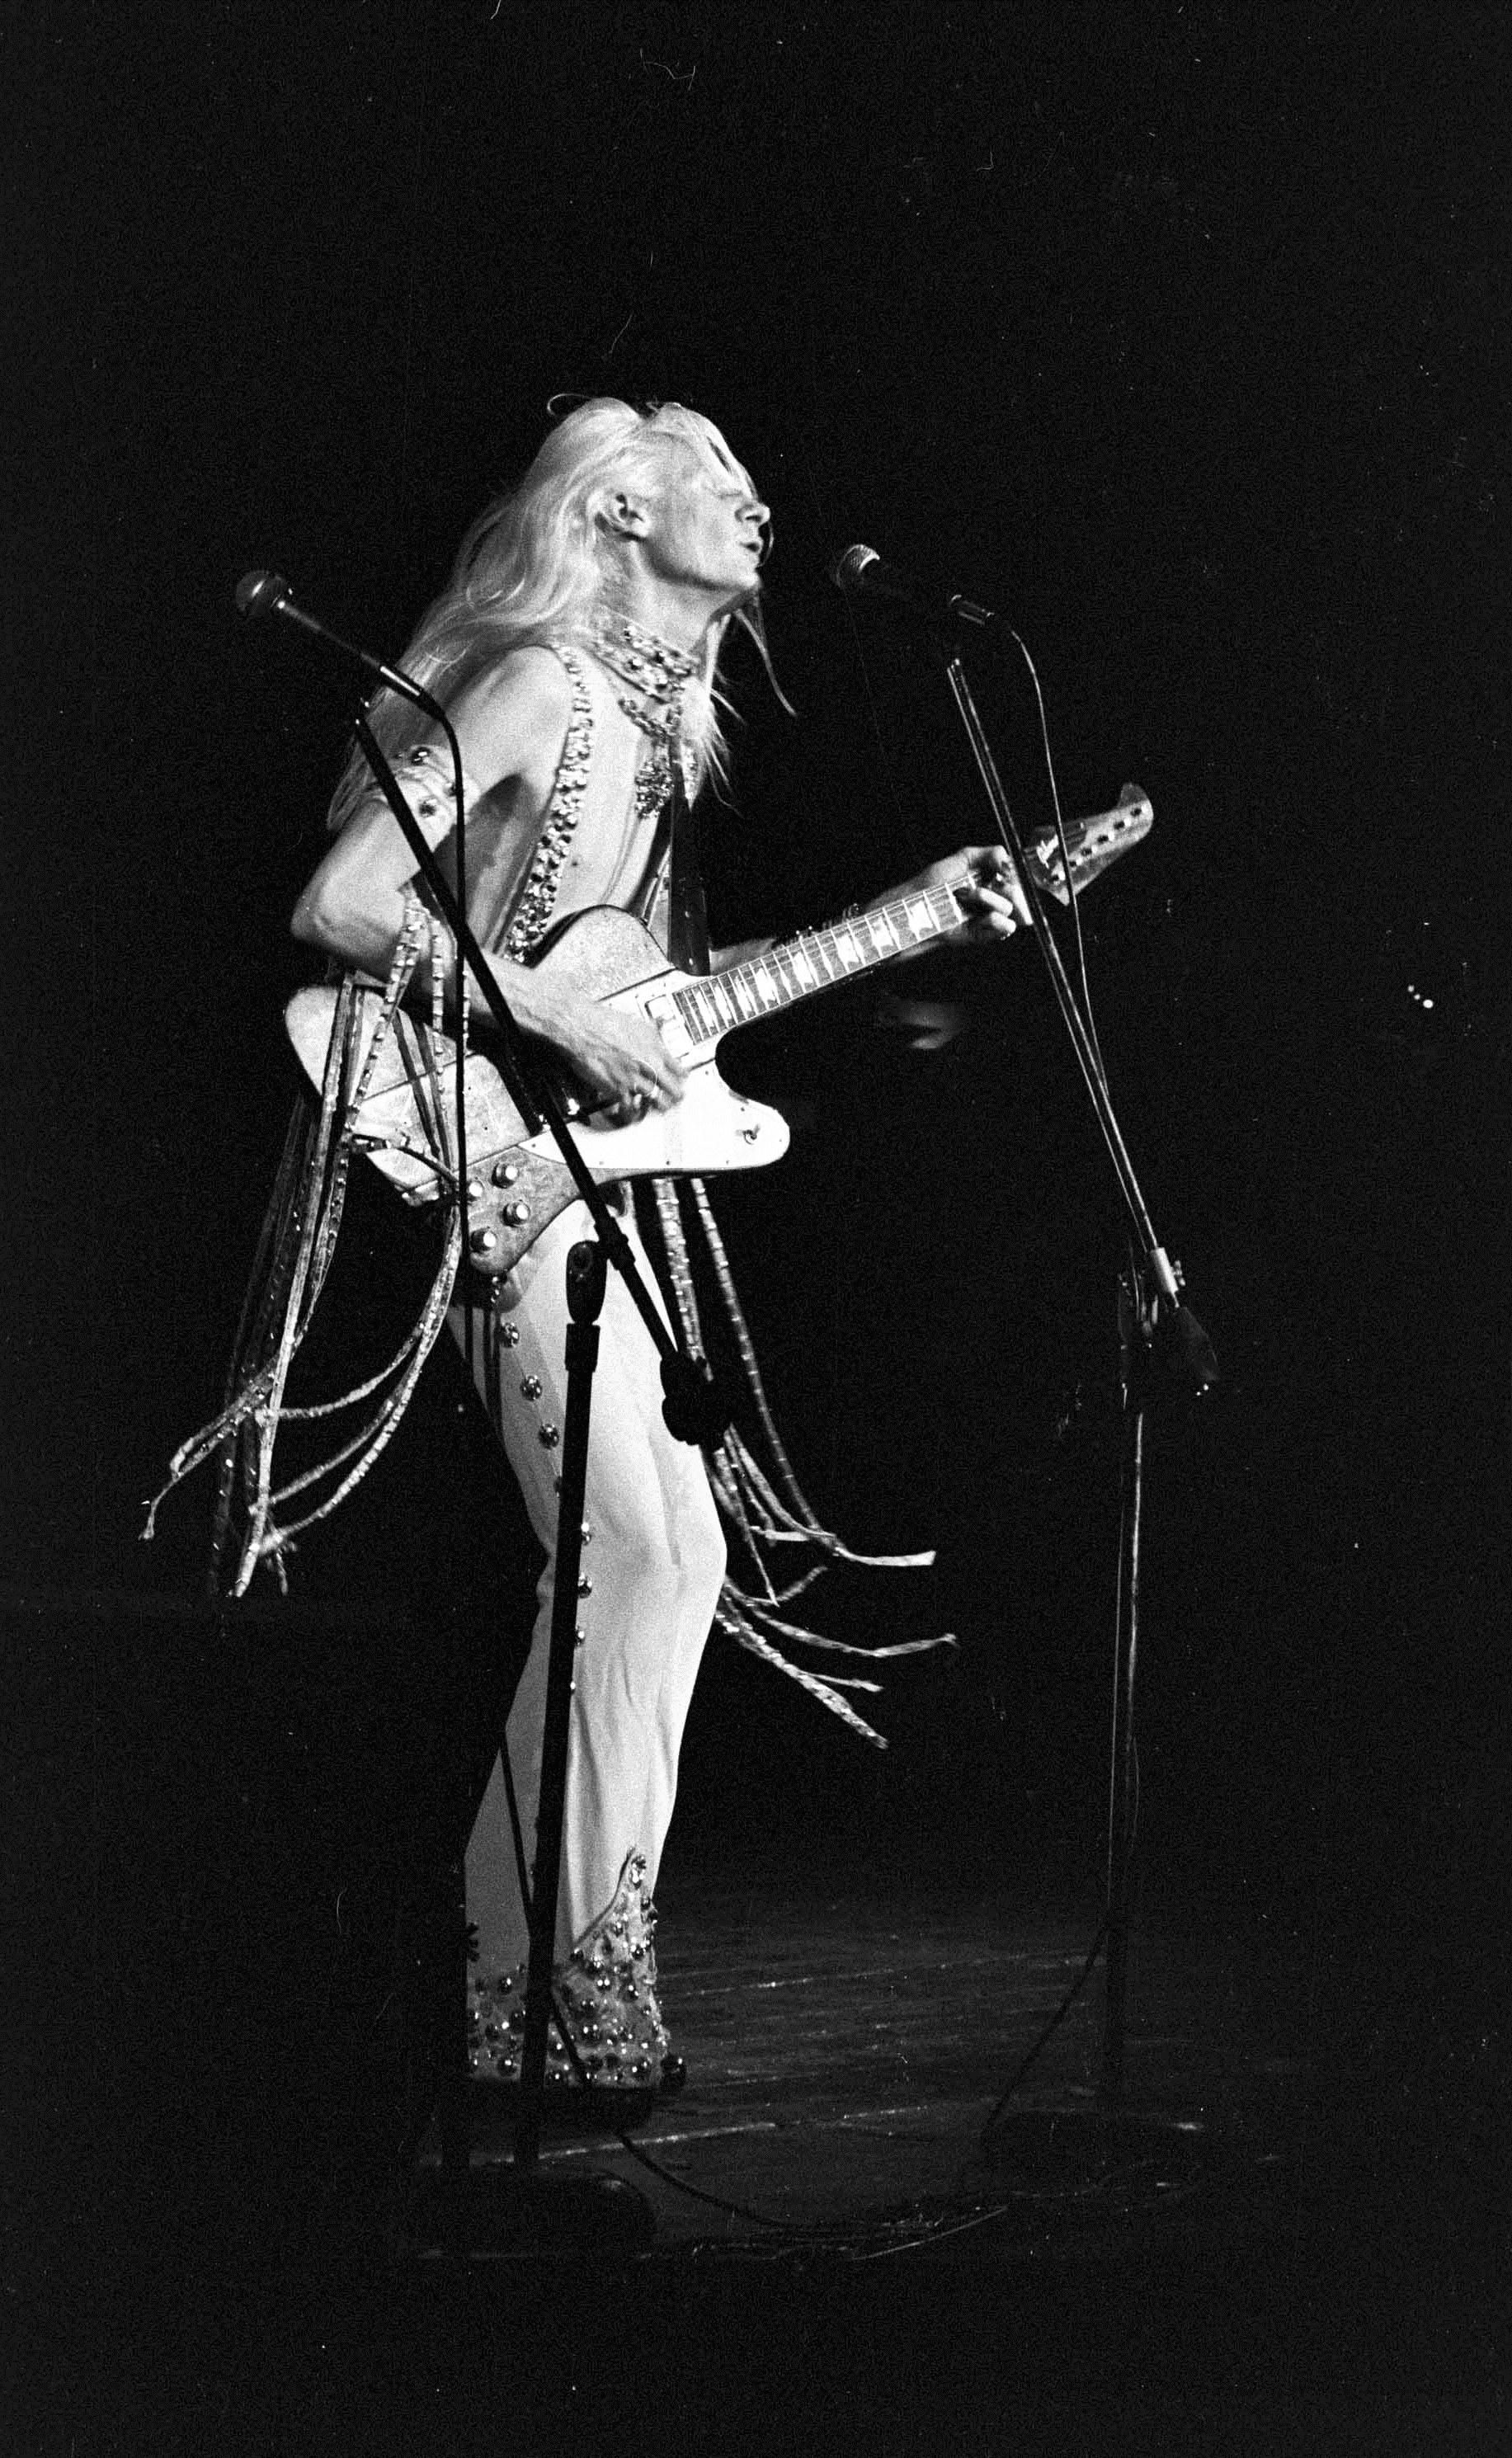 johnny winter madison square garden nyc 1973 play that